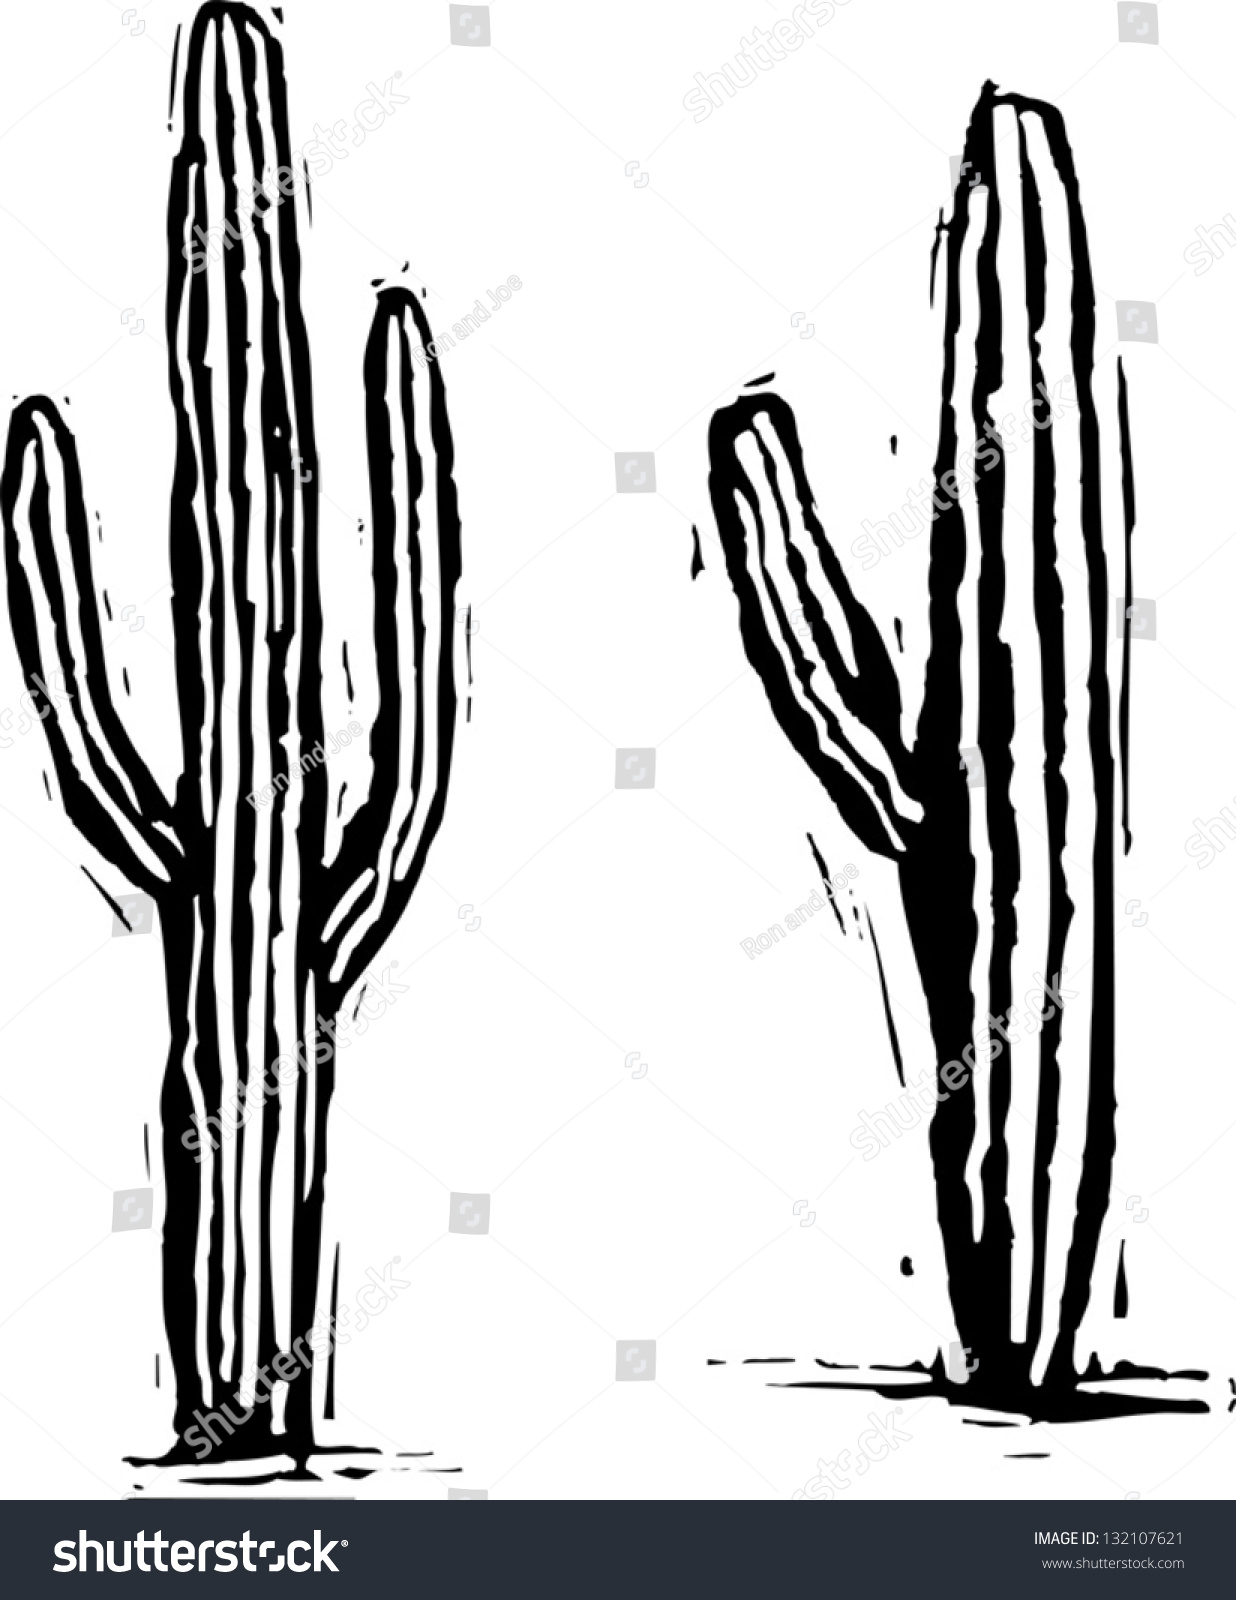 Black And White Vector Illustration Of Saguaro Cactus ...